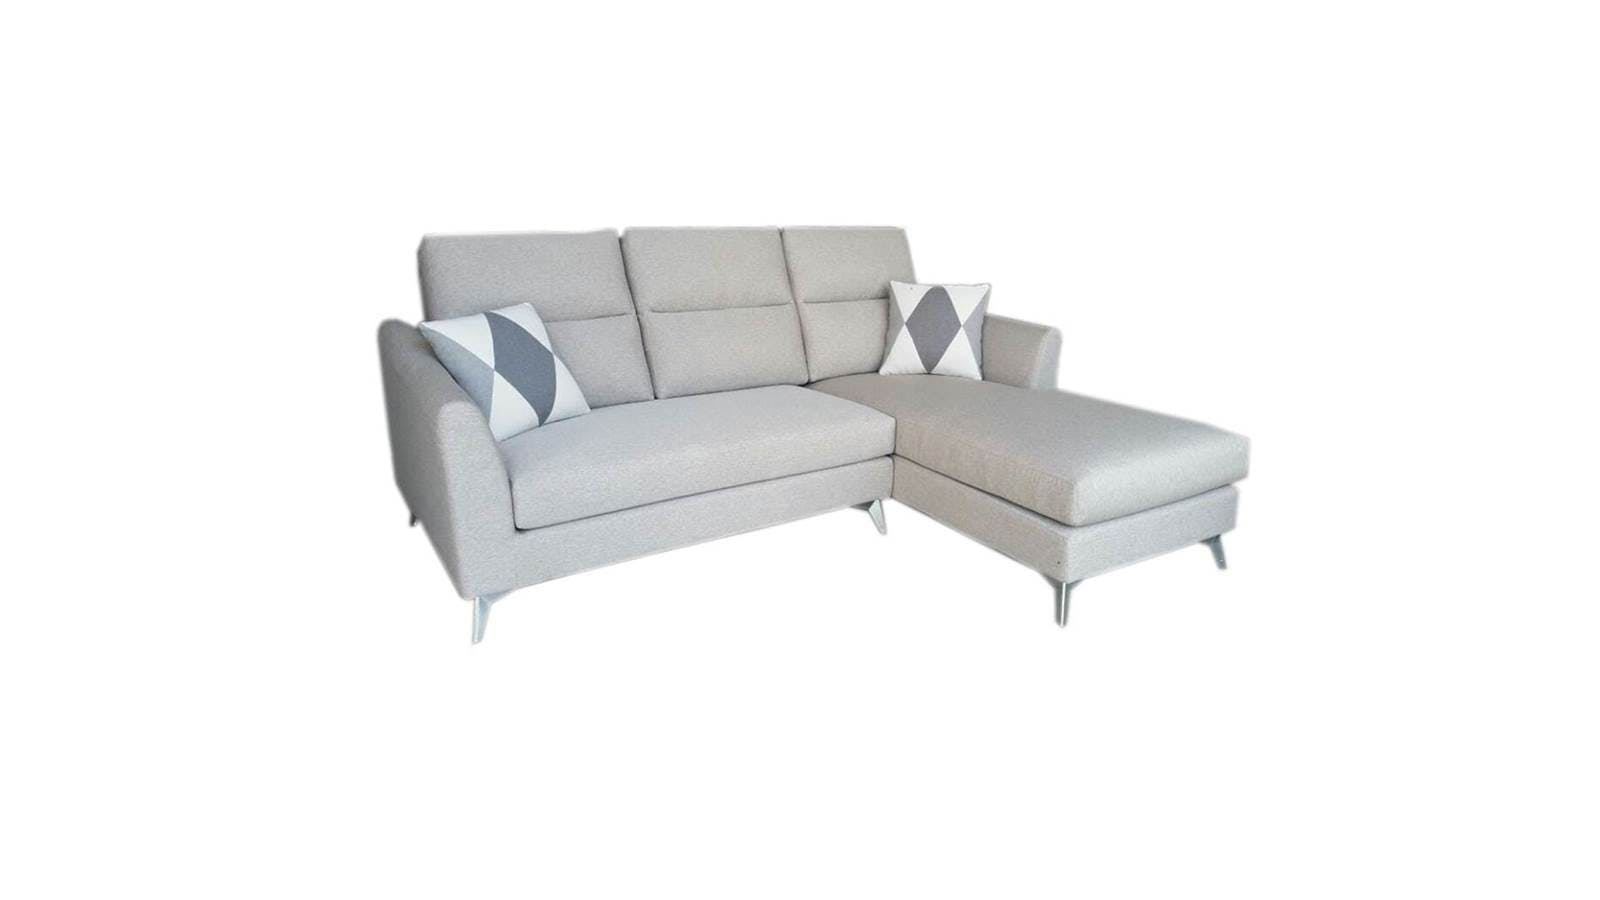 Tina 2 seater washable fabric sofa with lhf chaise for 2 seater sofa with chaise